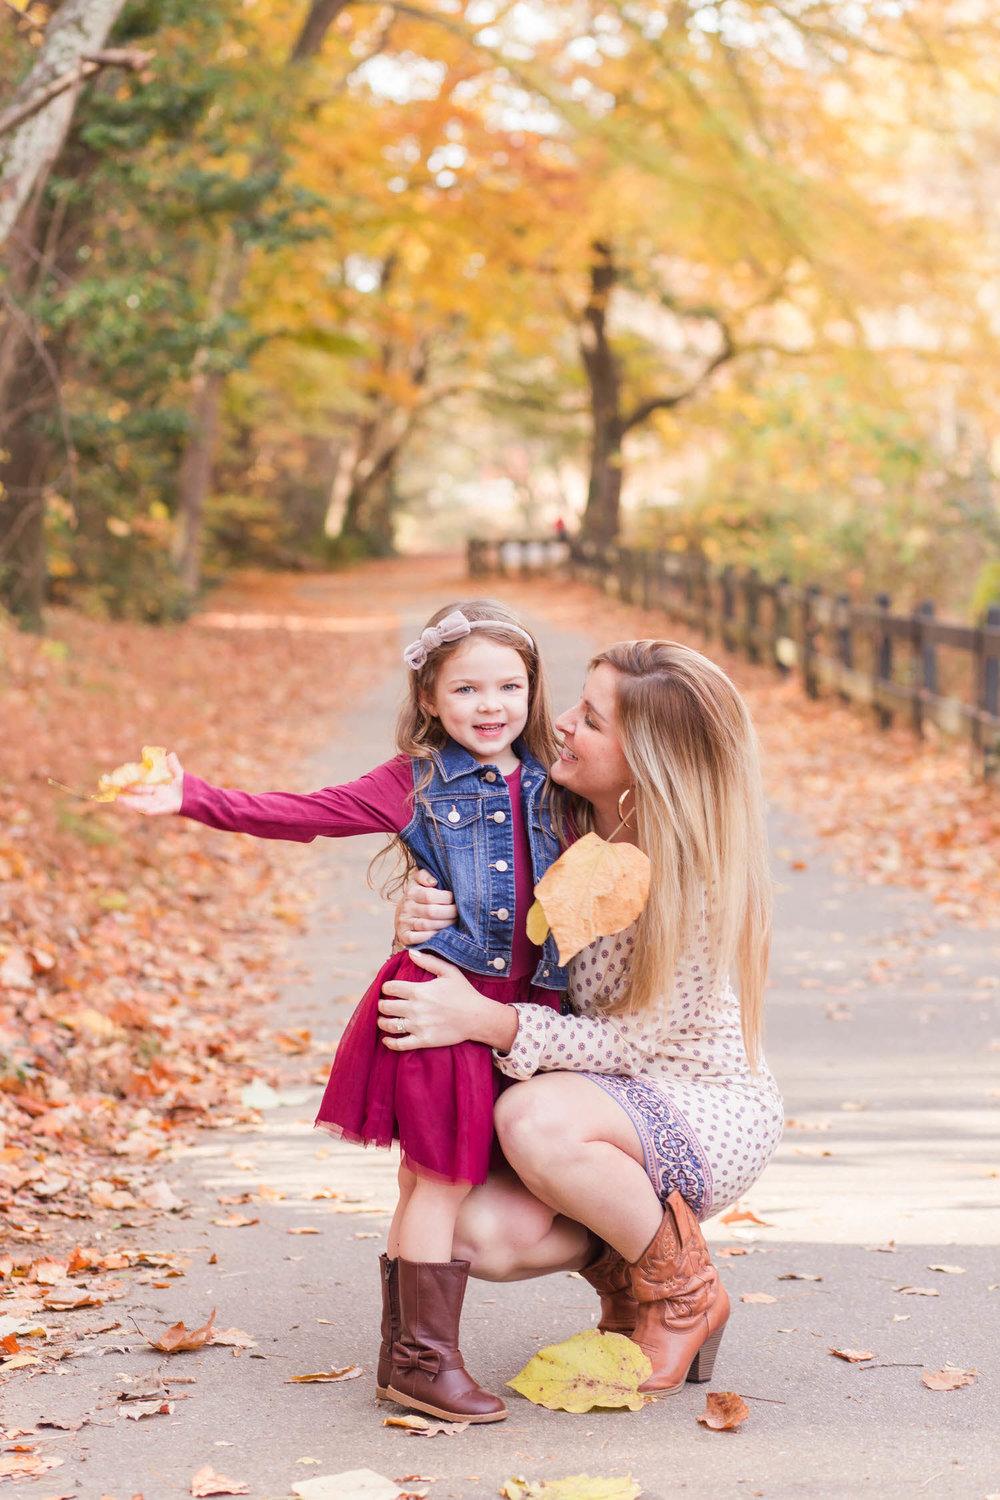 Ashley-AMBER-Photo-Greenville-Family-Photographer-161125.jpg